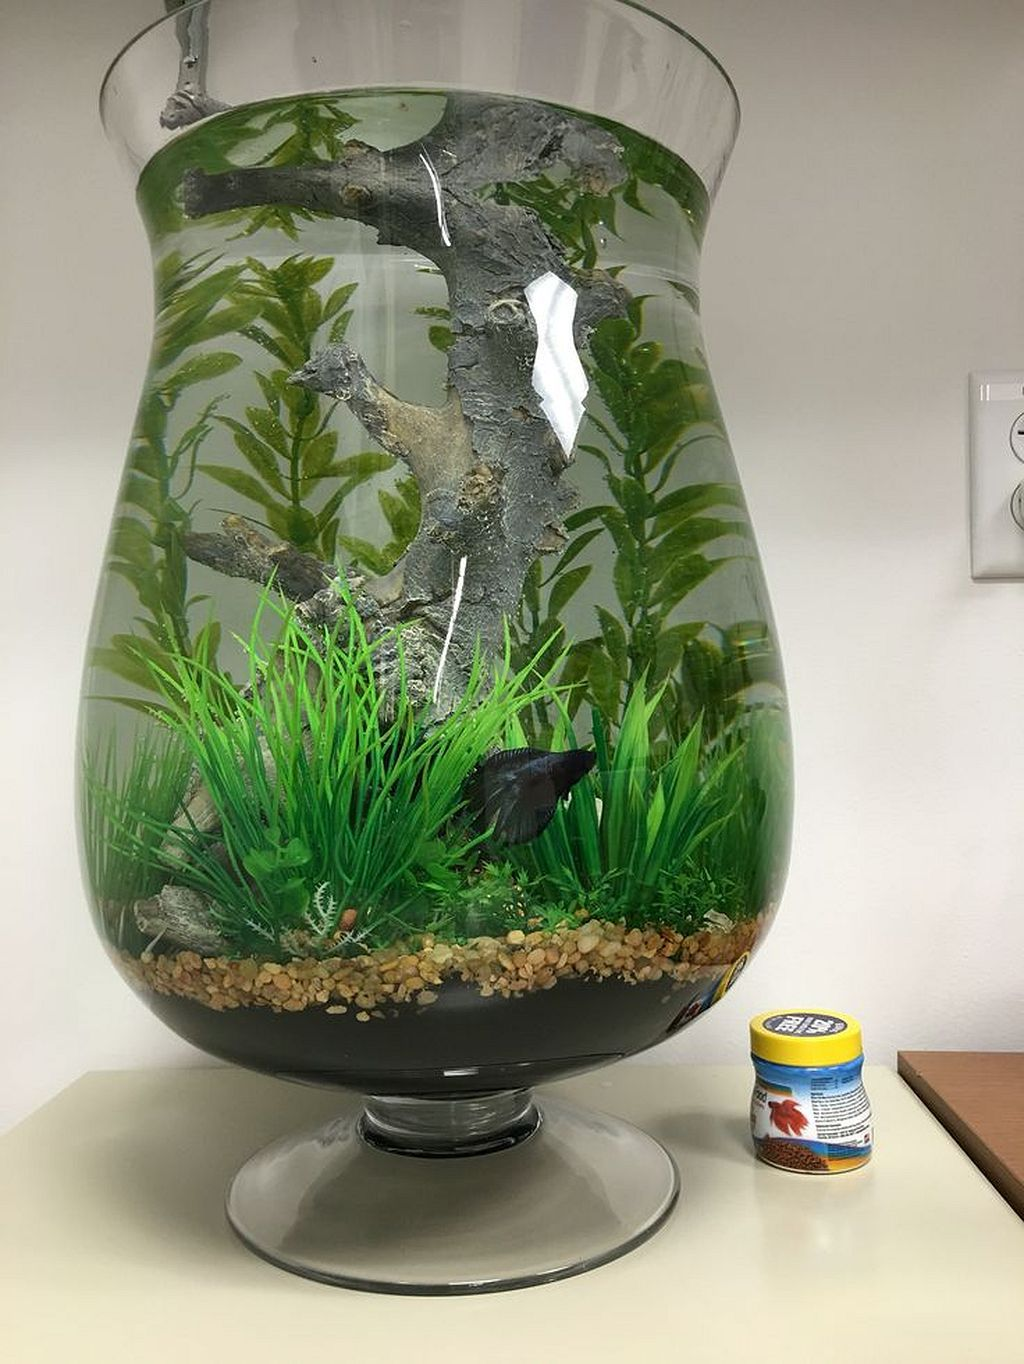 Gorgeous 30 Awesome Fish Tank Ideas Https Gardenmagz Com 30 Awesome Fish Tank Ideas Betta Fish Care Fish Plants Diy Fish Tank